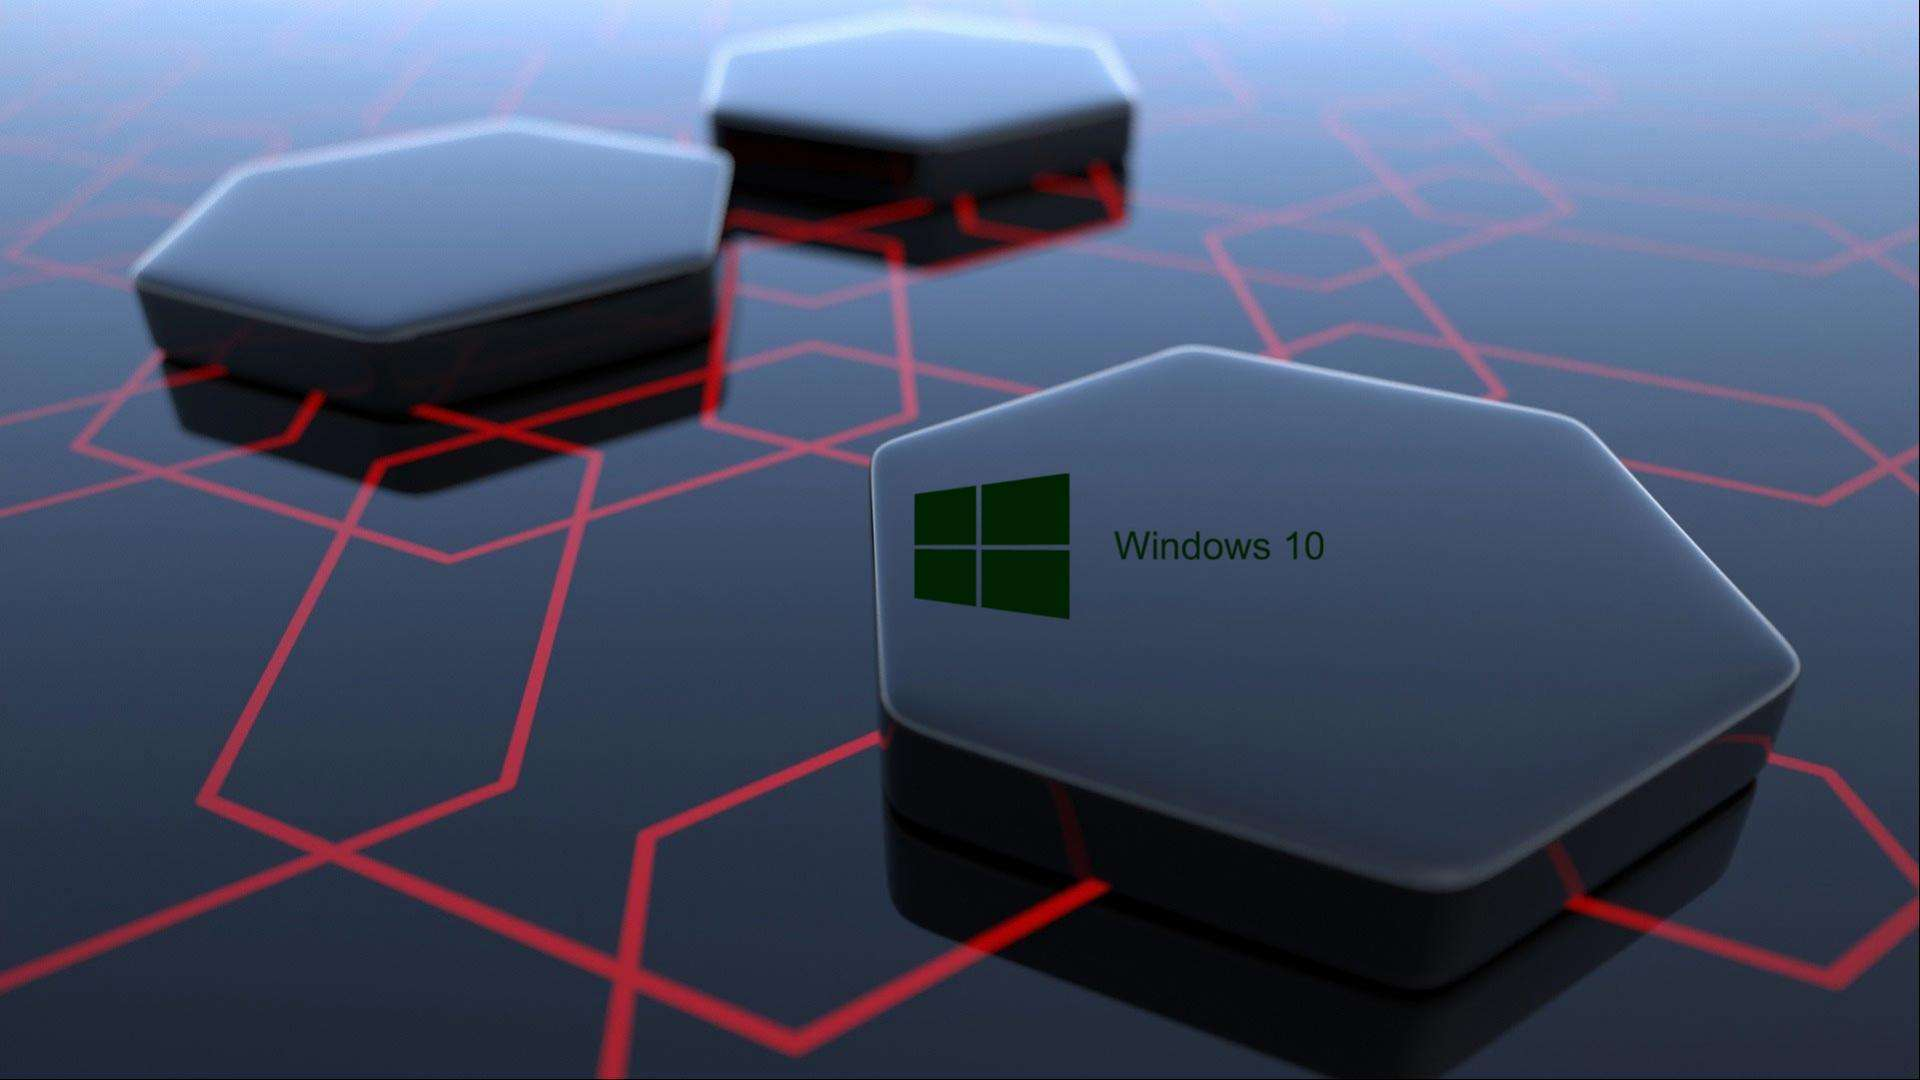 windows 10 wallpapers 20 - [1920 x 1080]